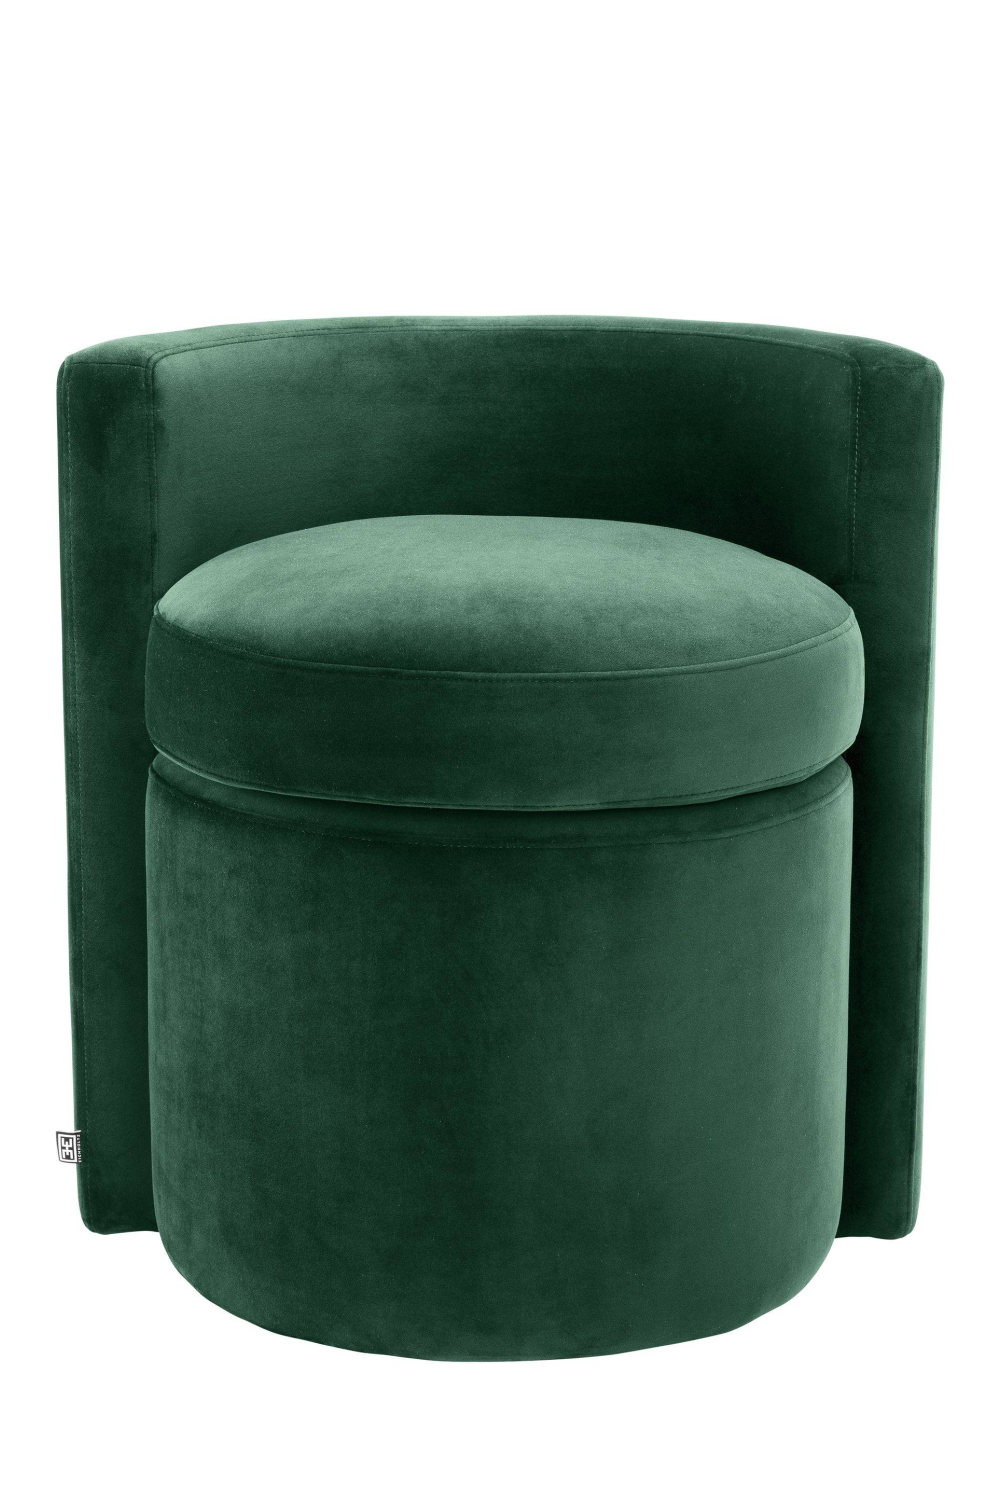 Green Curved Back Stool | Eichholtz Arcadia